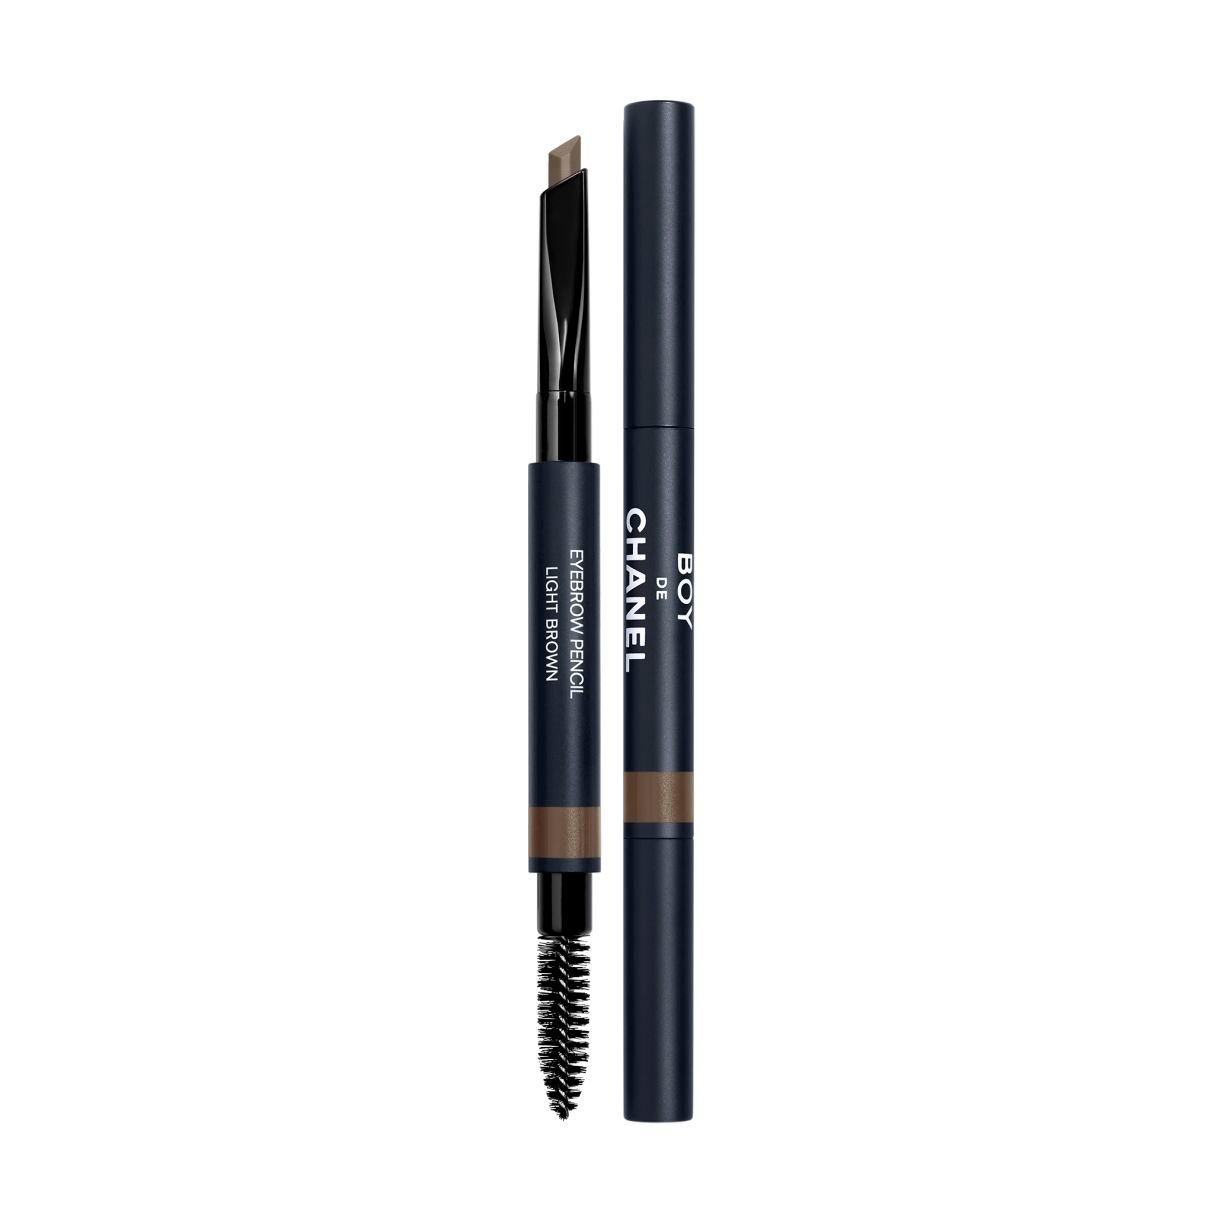 BOY DE CHANEL EYEBROW PENCIL WATERPROOF AND LONGWEARING EYEBROW PENCIL 202 - LIGHT BROWN